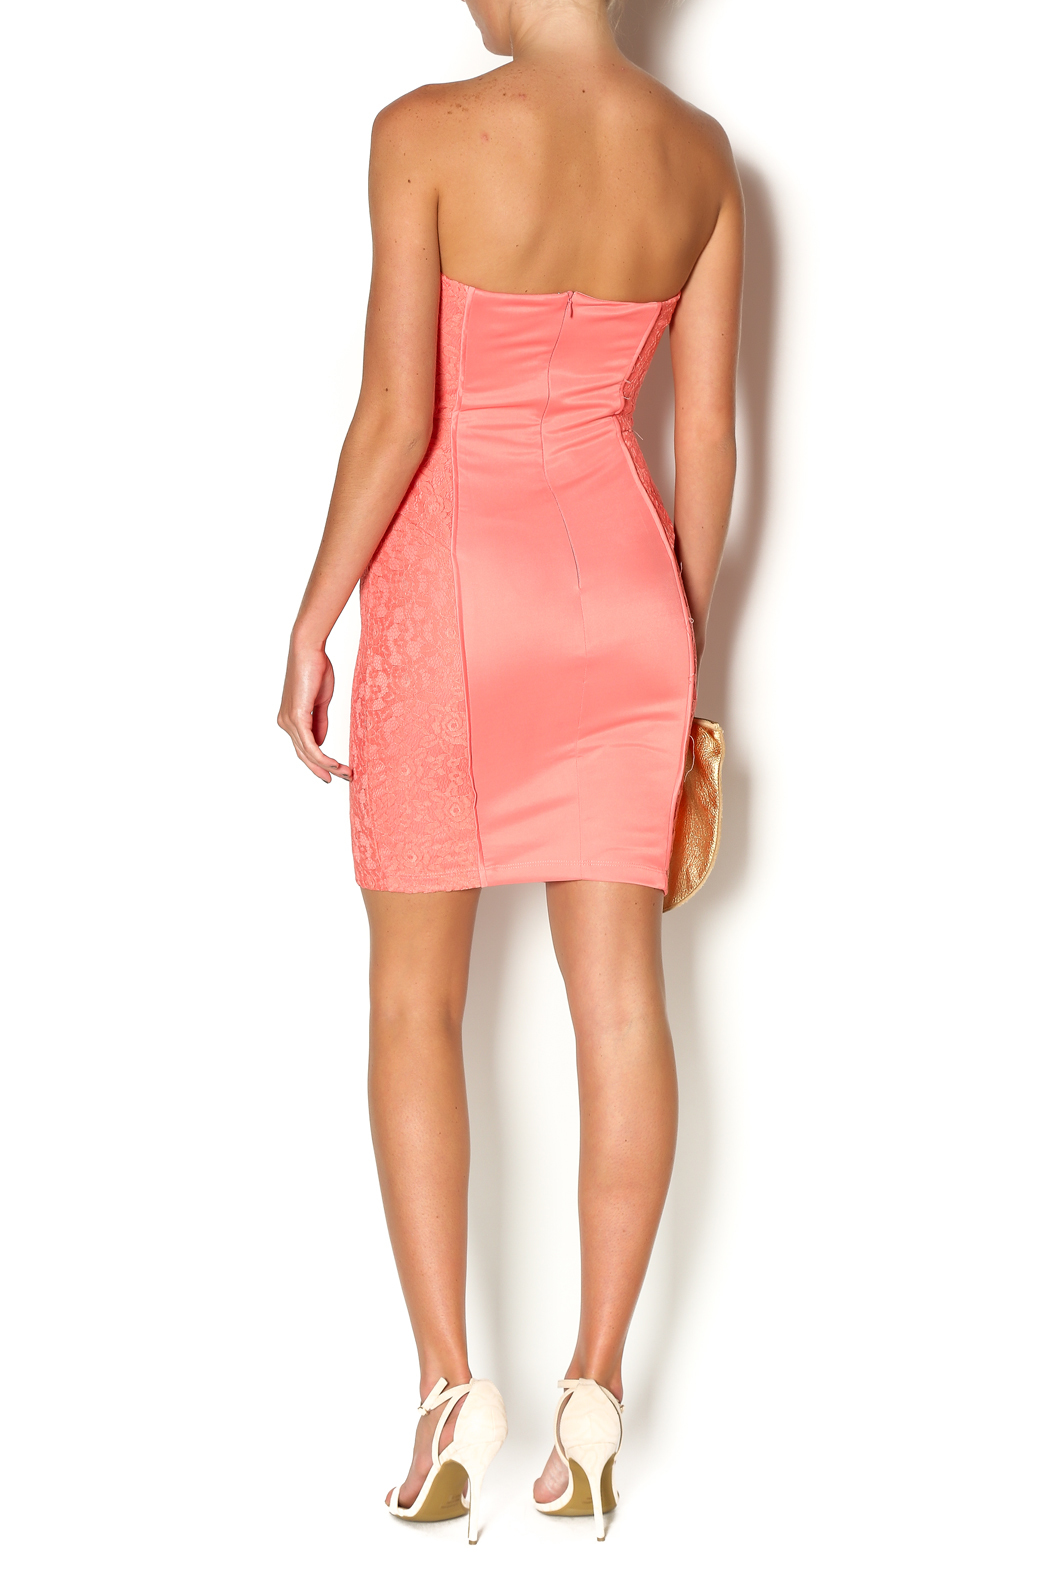 Abby & Taylor Strapless Coral Lace Dress - Side Cropped Image